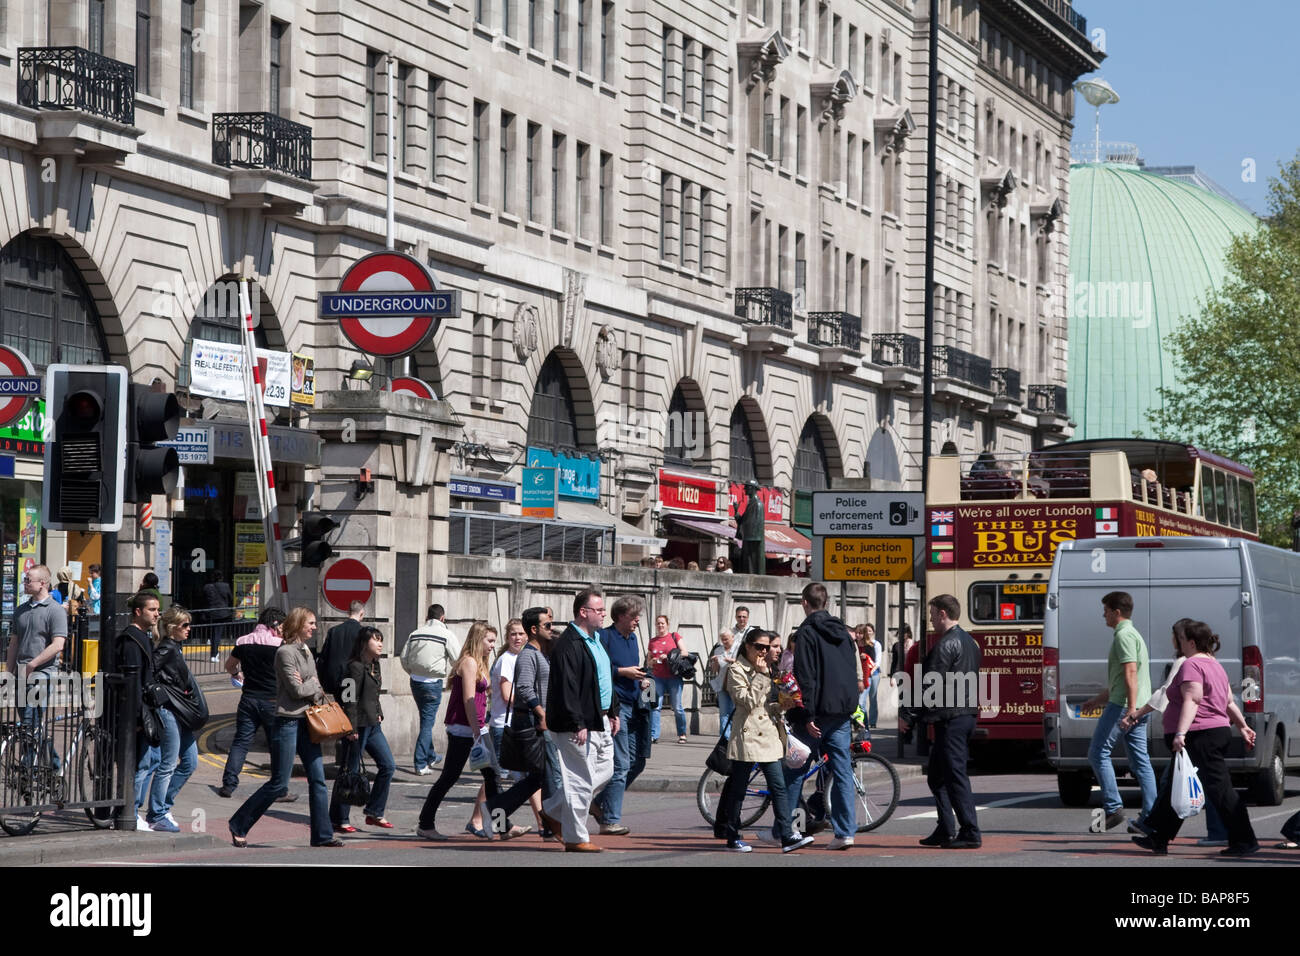 the busy street scene at Baker Street Station London with Madame Tussauds - Stock Image